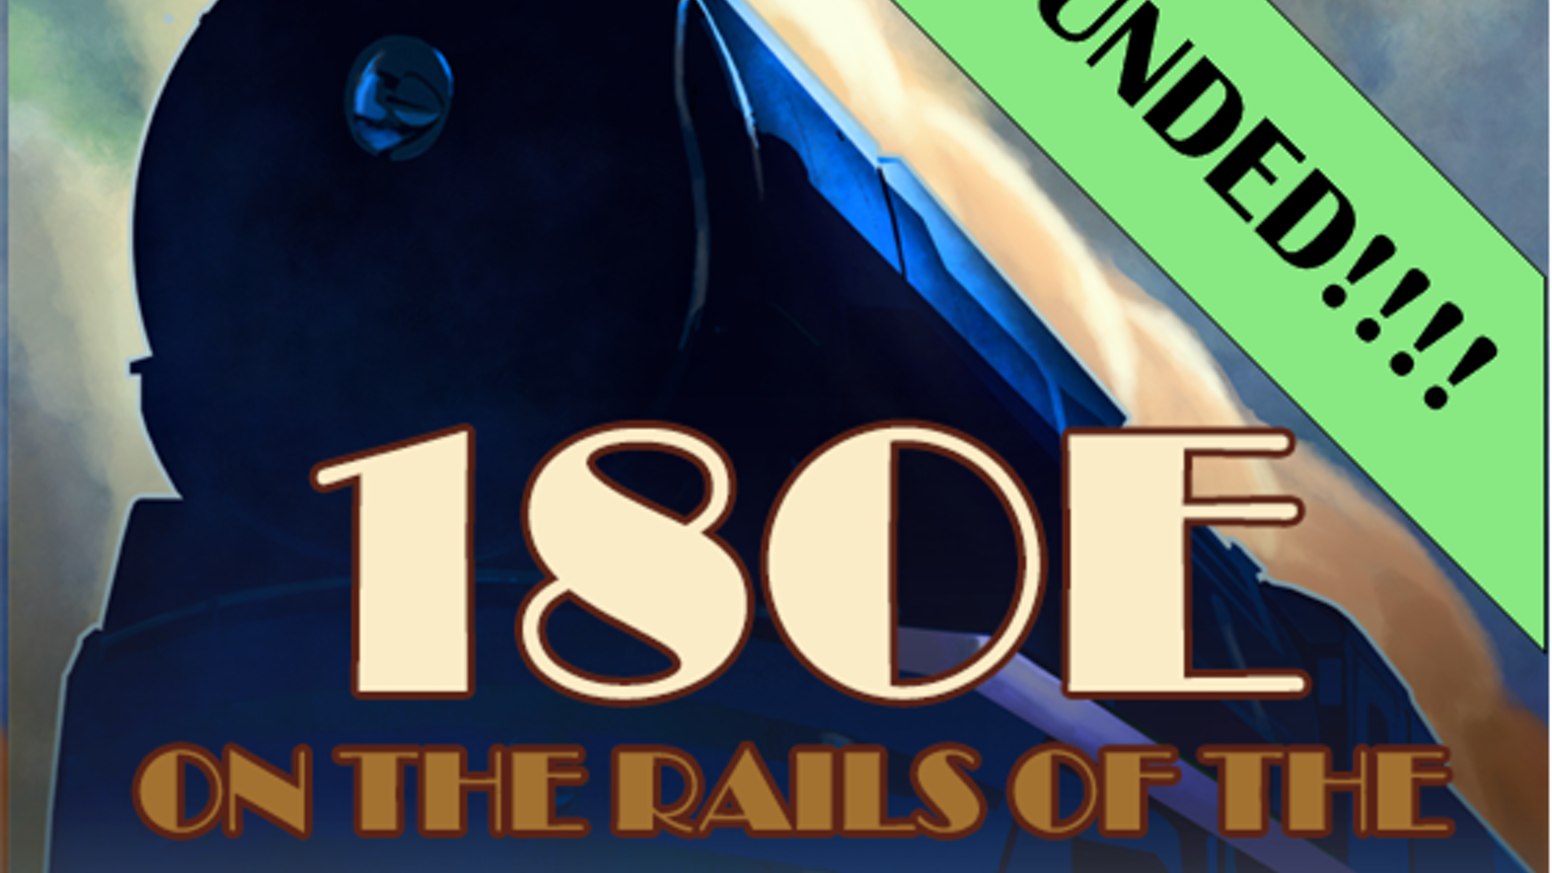 18OE: On the Rails of the Orient Express by Designs In